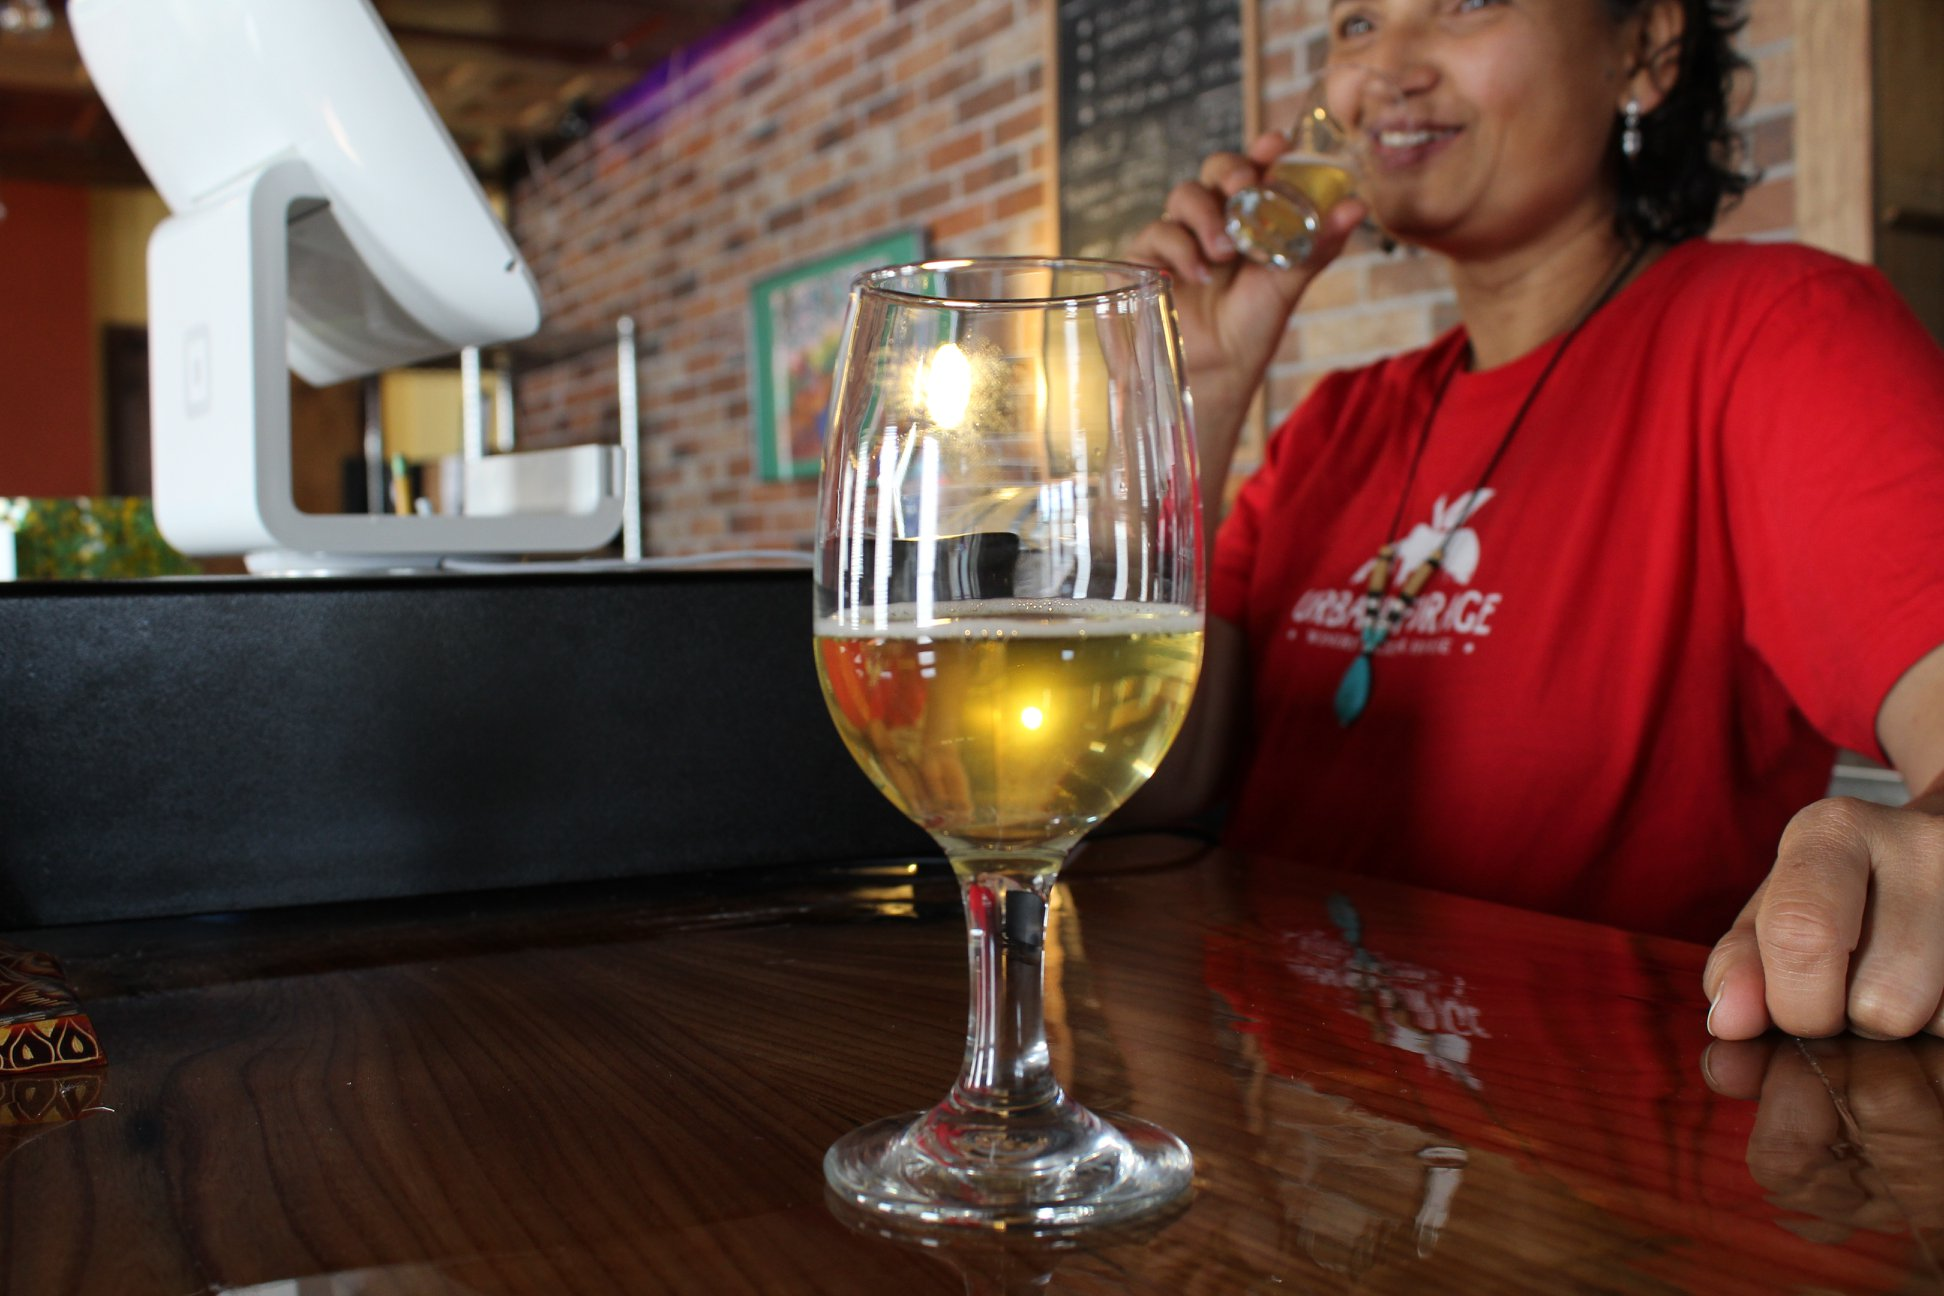 A goblet of cider at Urban Forage Winery & Cider House. Gita Zietler, an owner of Urban Forage, is in the background // Photo via Urban Forage Winery & Cider House Facebook